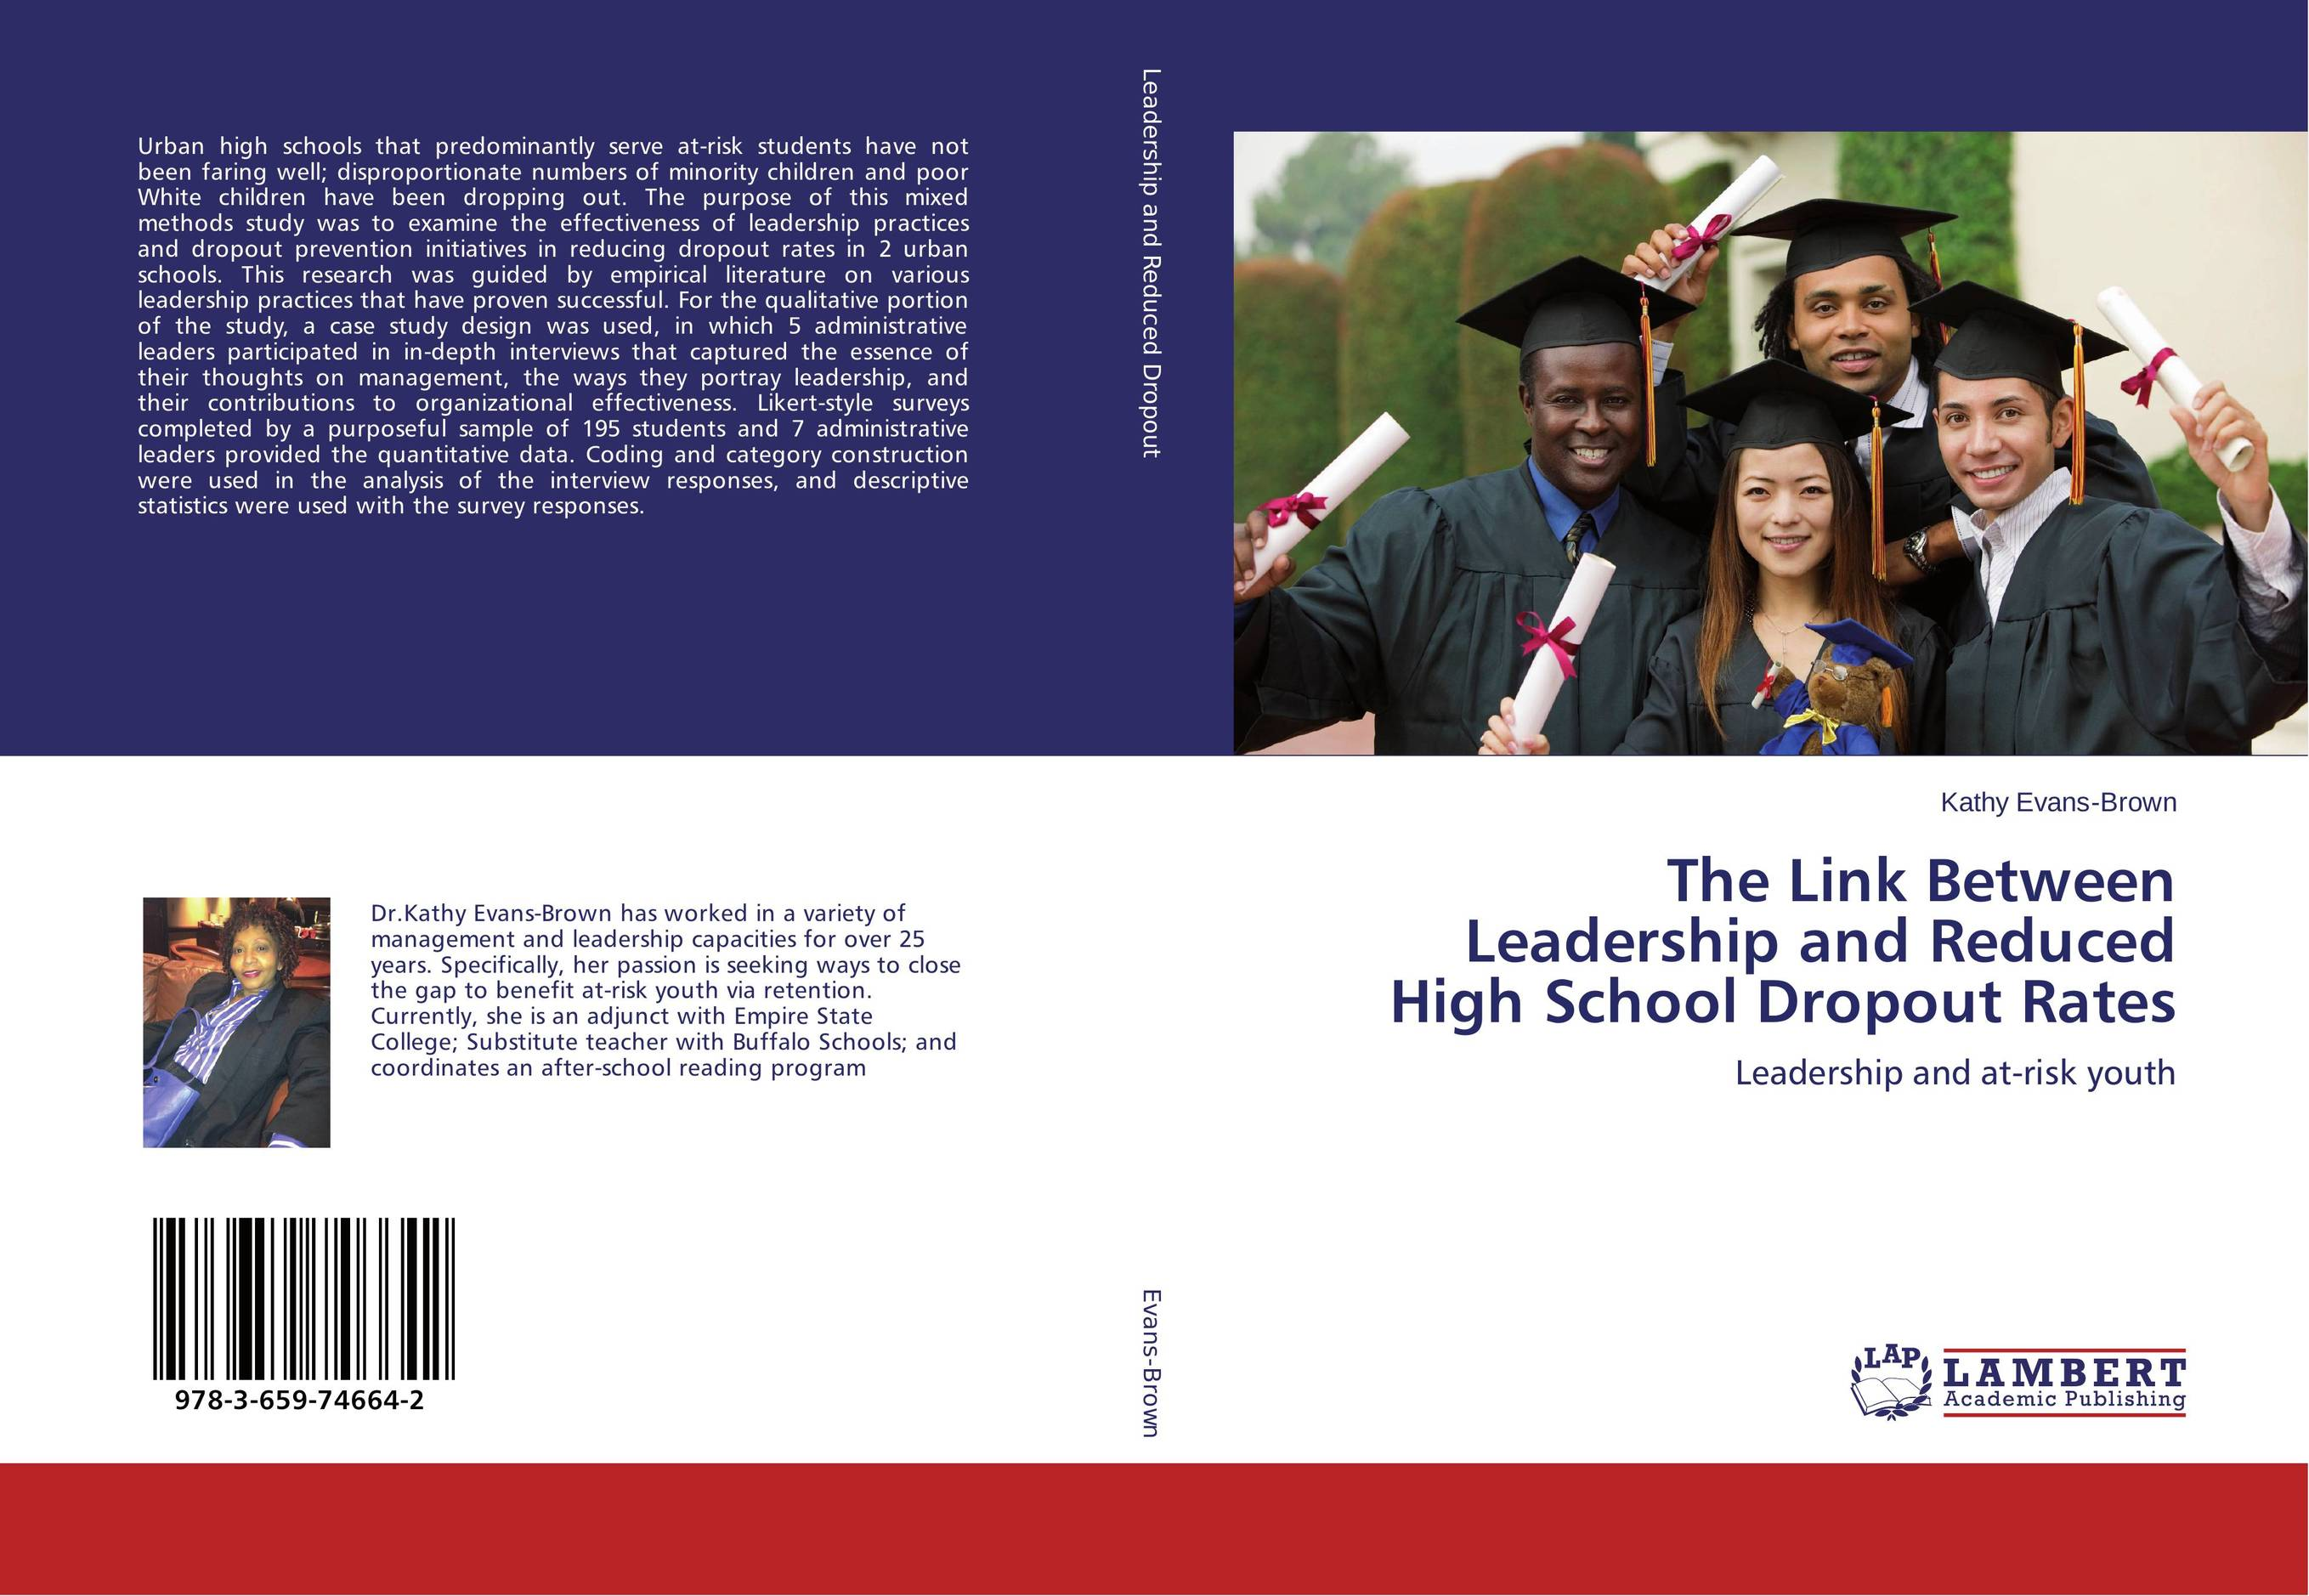 The Link Between Leadership and Reduced High School Dropout Rates role of school leadership in promoting moral integrity among students